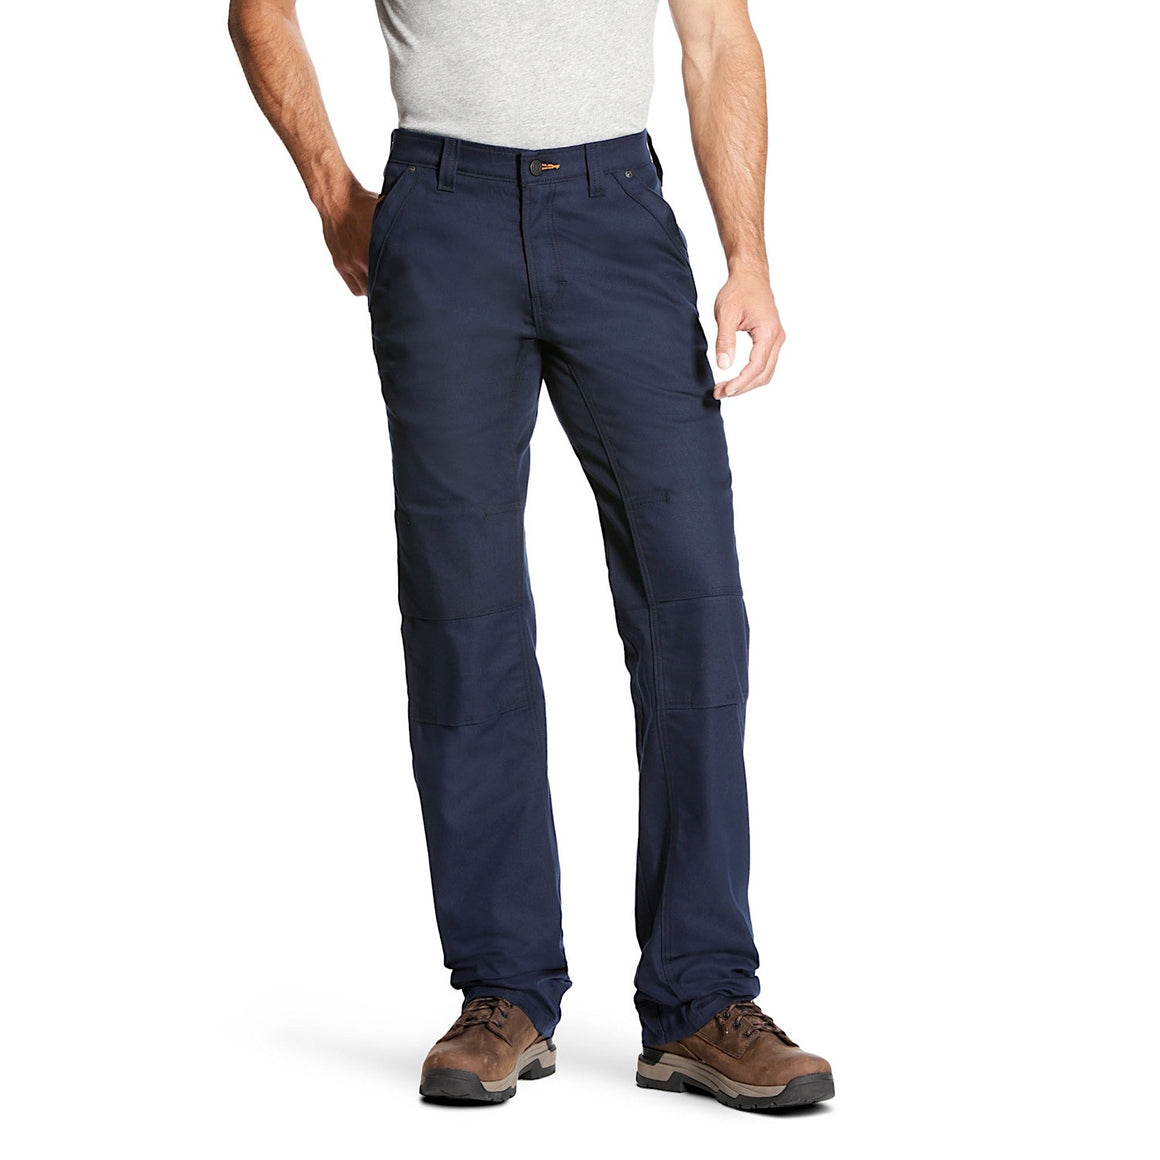 Ariat Mens Rebar M4 Low Rise DuraStretch Canvas Work Pants